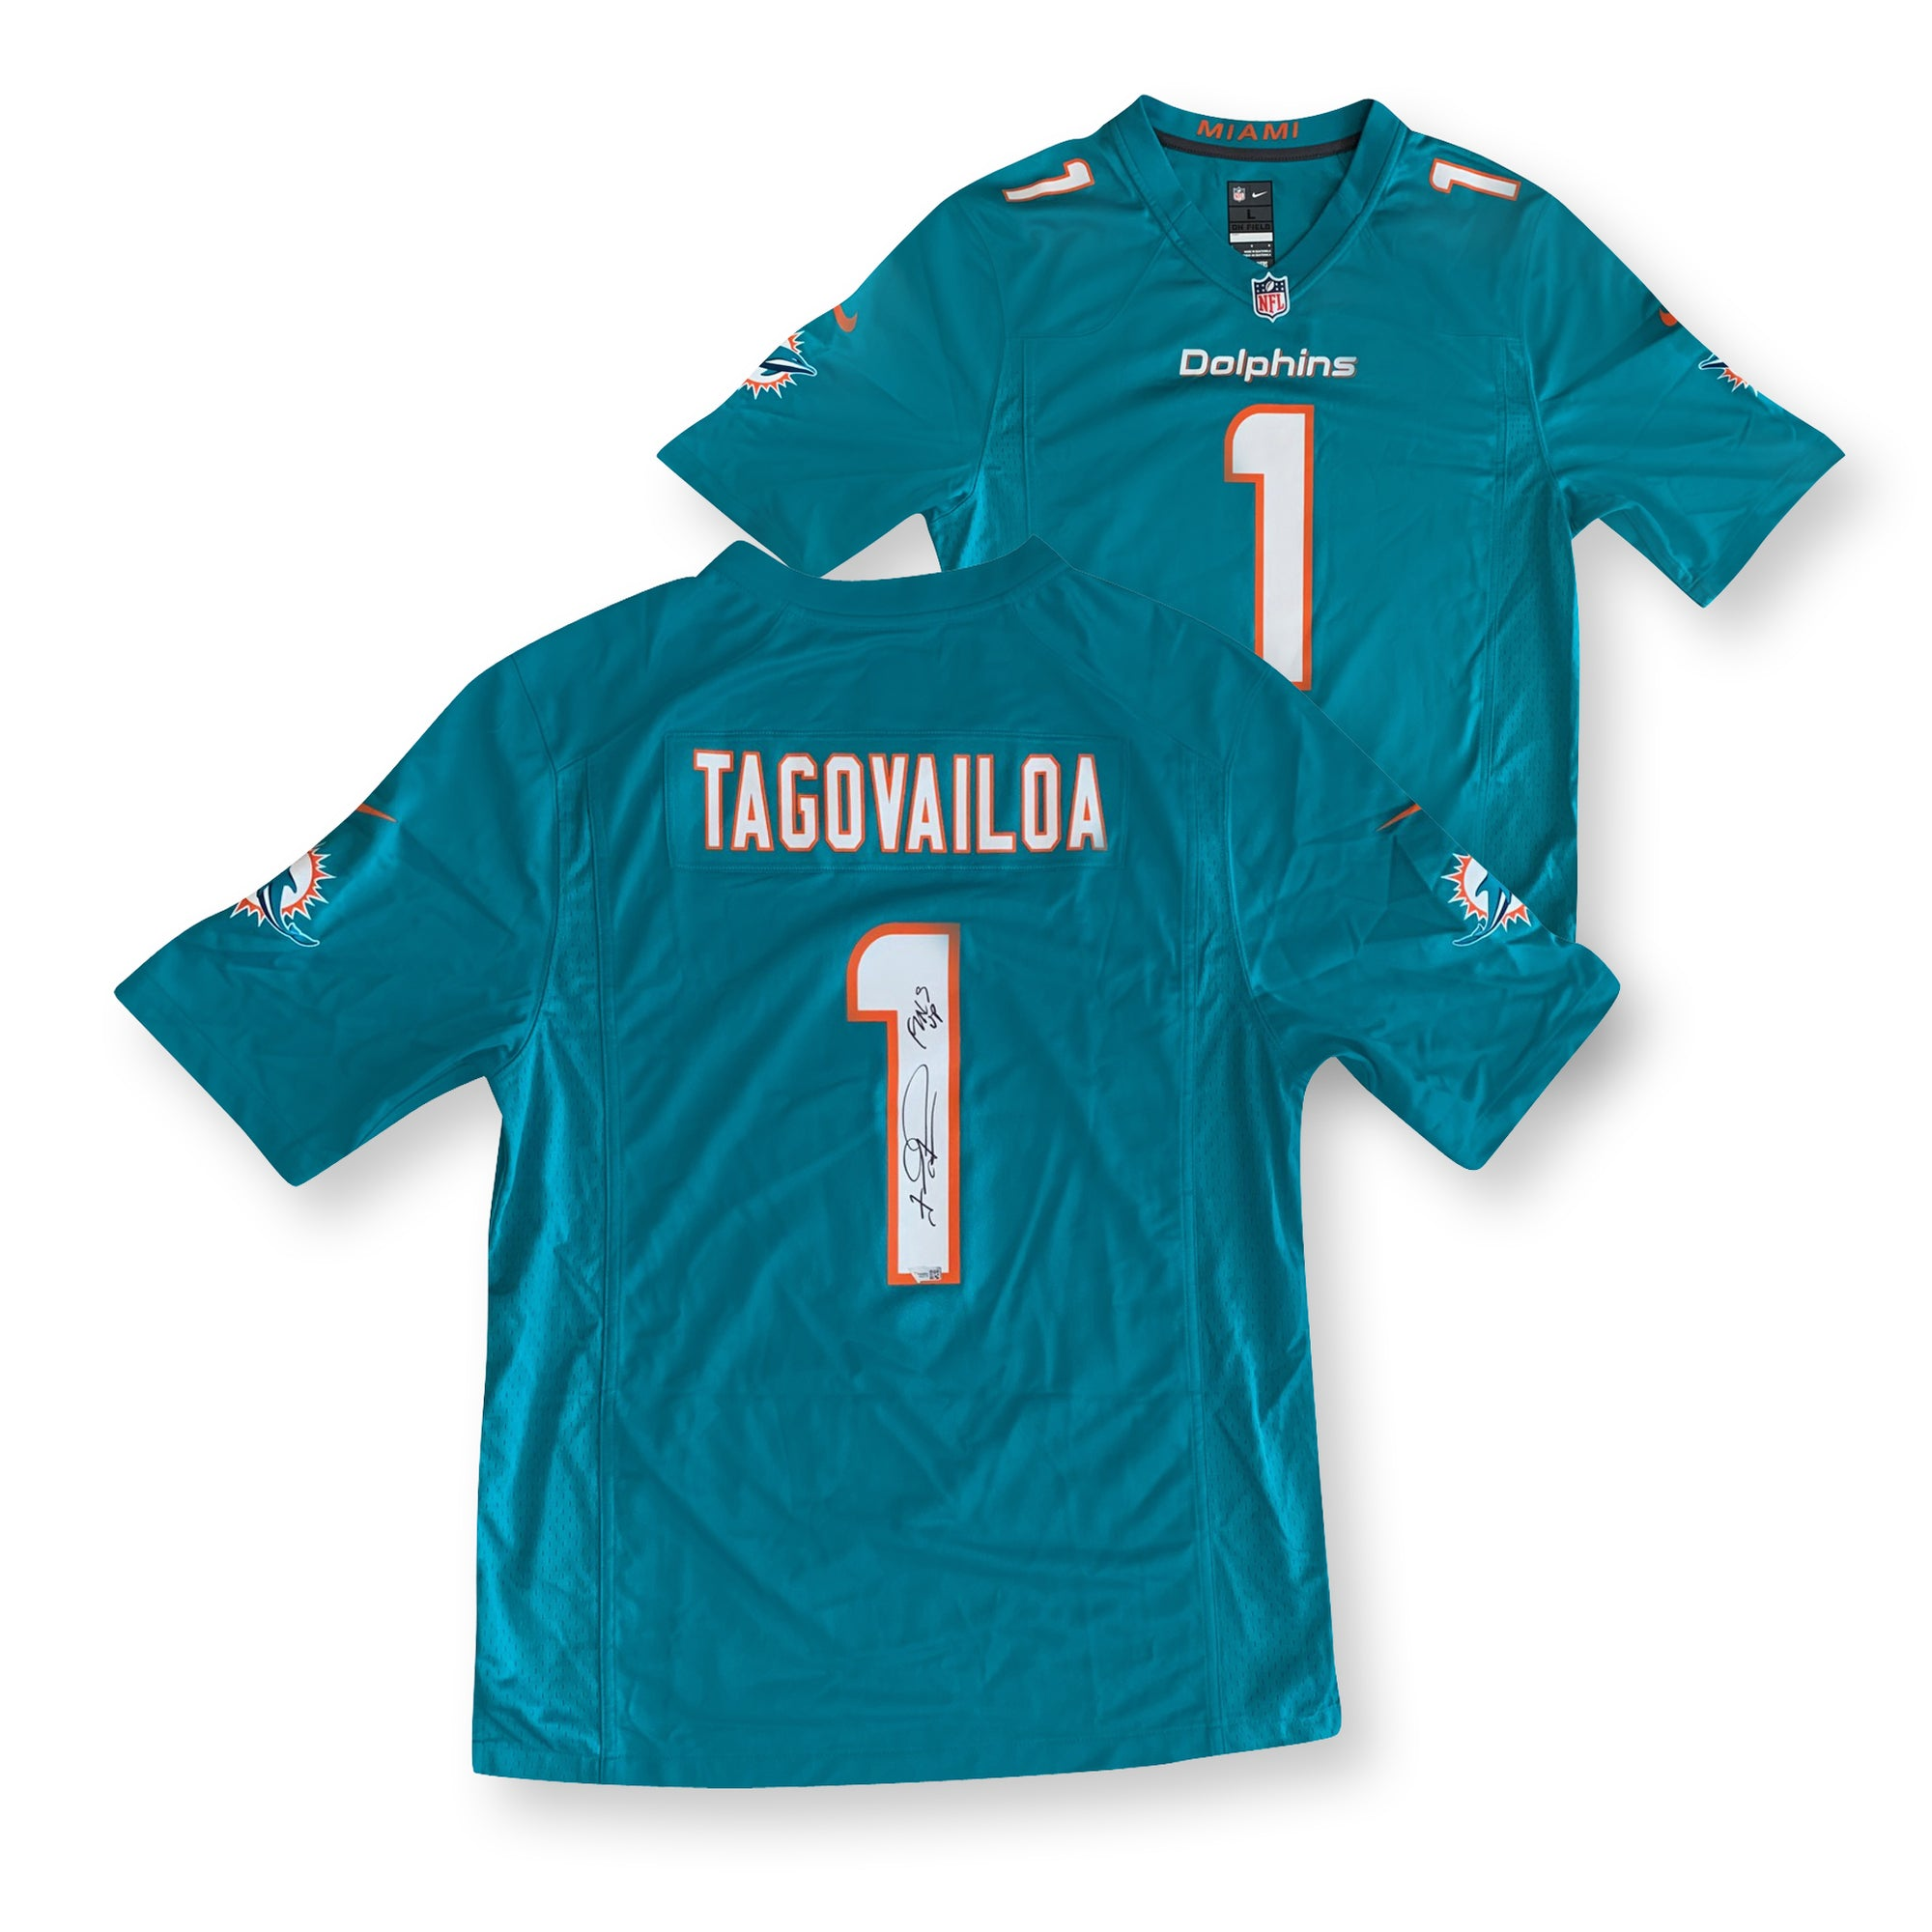 Tua Tagovailoa Autographed Miami Dolphins Signed NFL Nike Game Football Jersey GO FINS Fanatics Authentic COA-Powers Sports Memorabilia